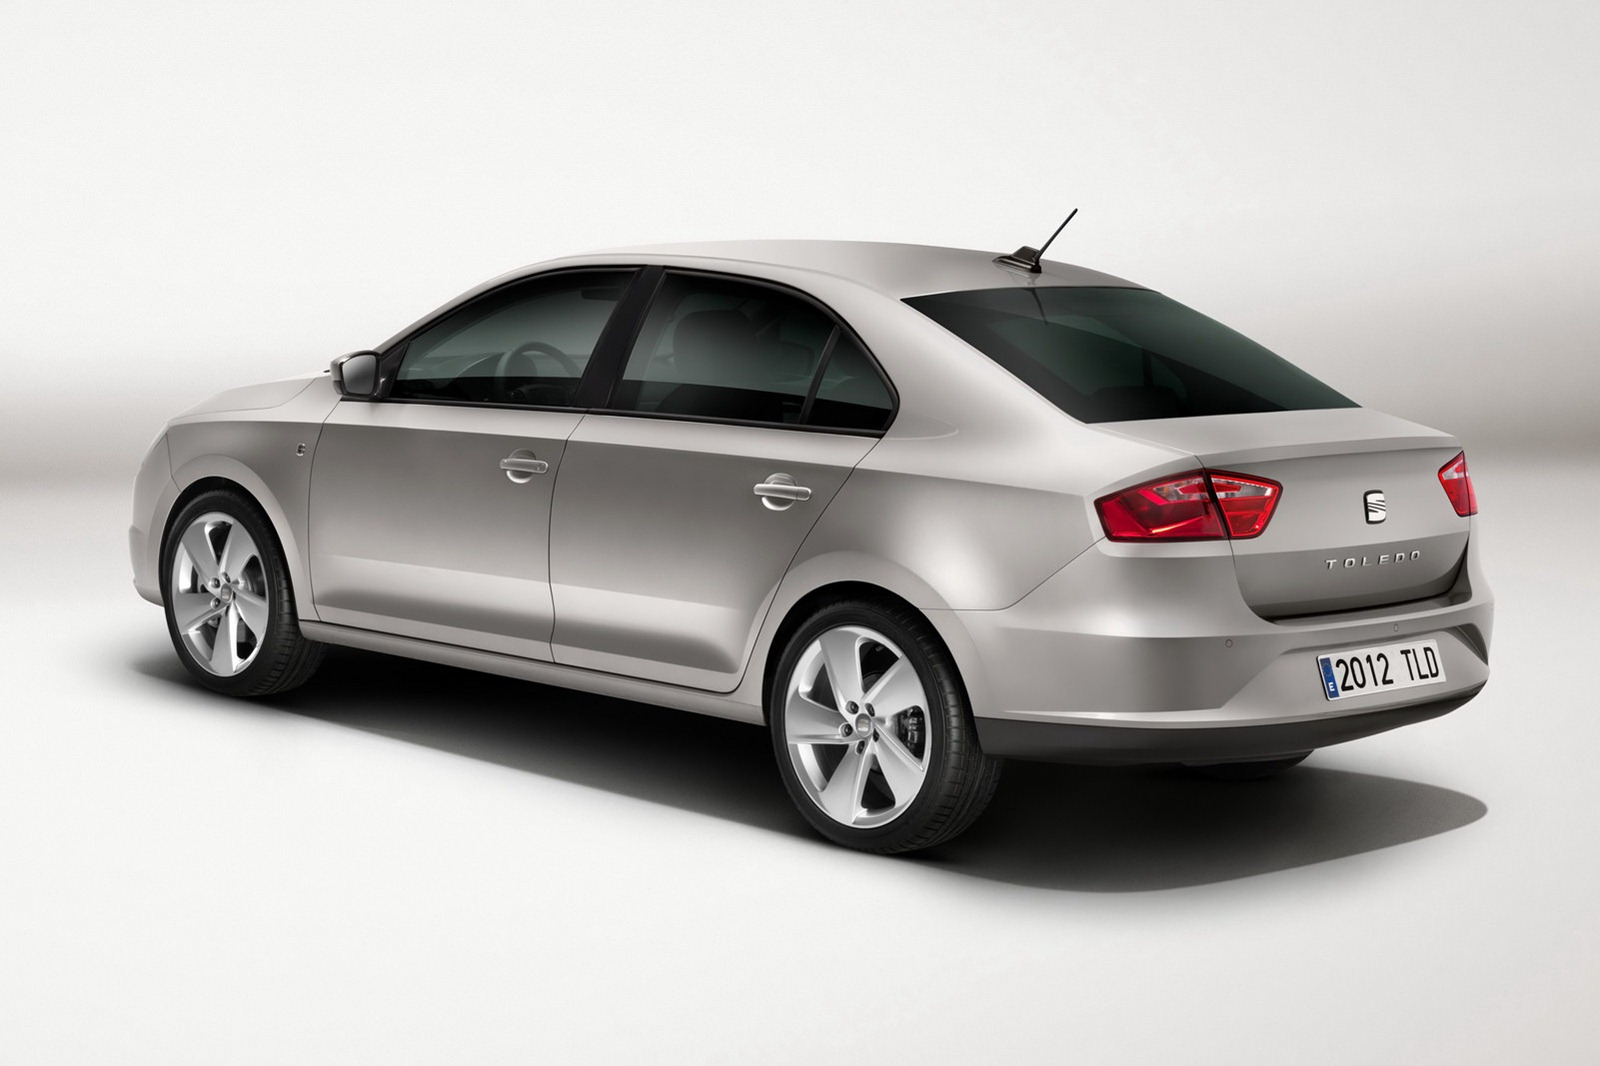 2013-Seat-Toledo-Sedan-Official-10.jpg?imgmax=1800